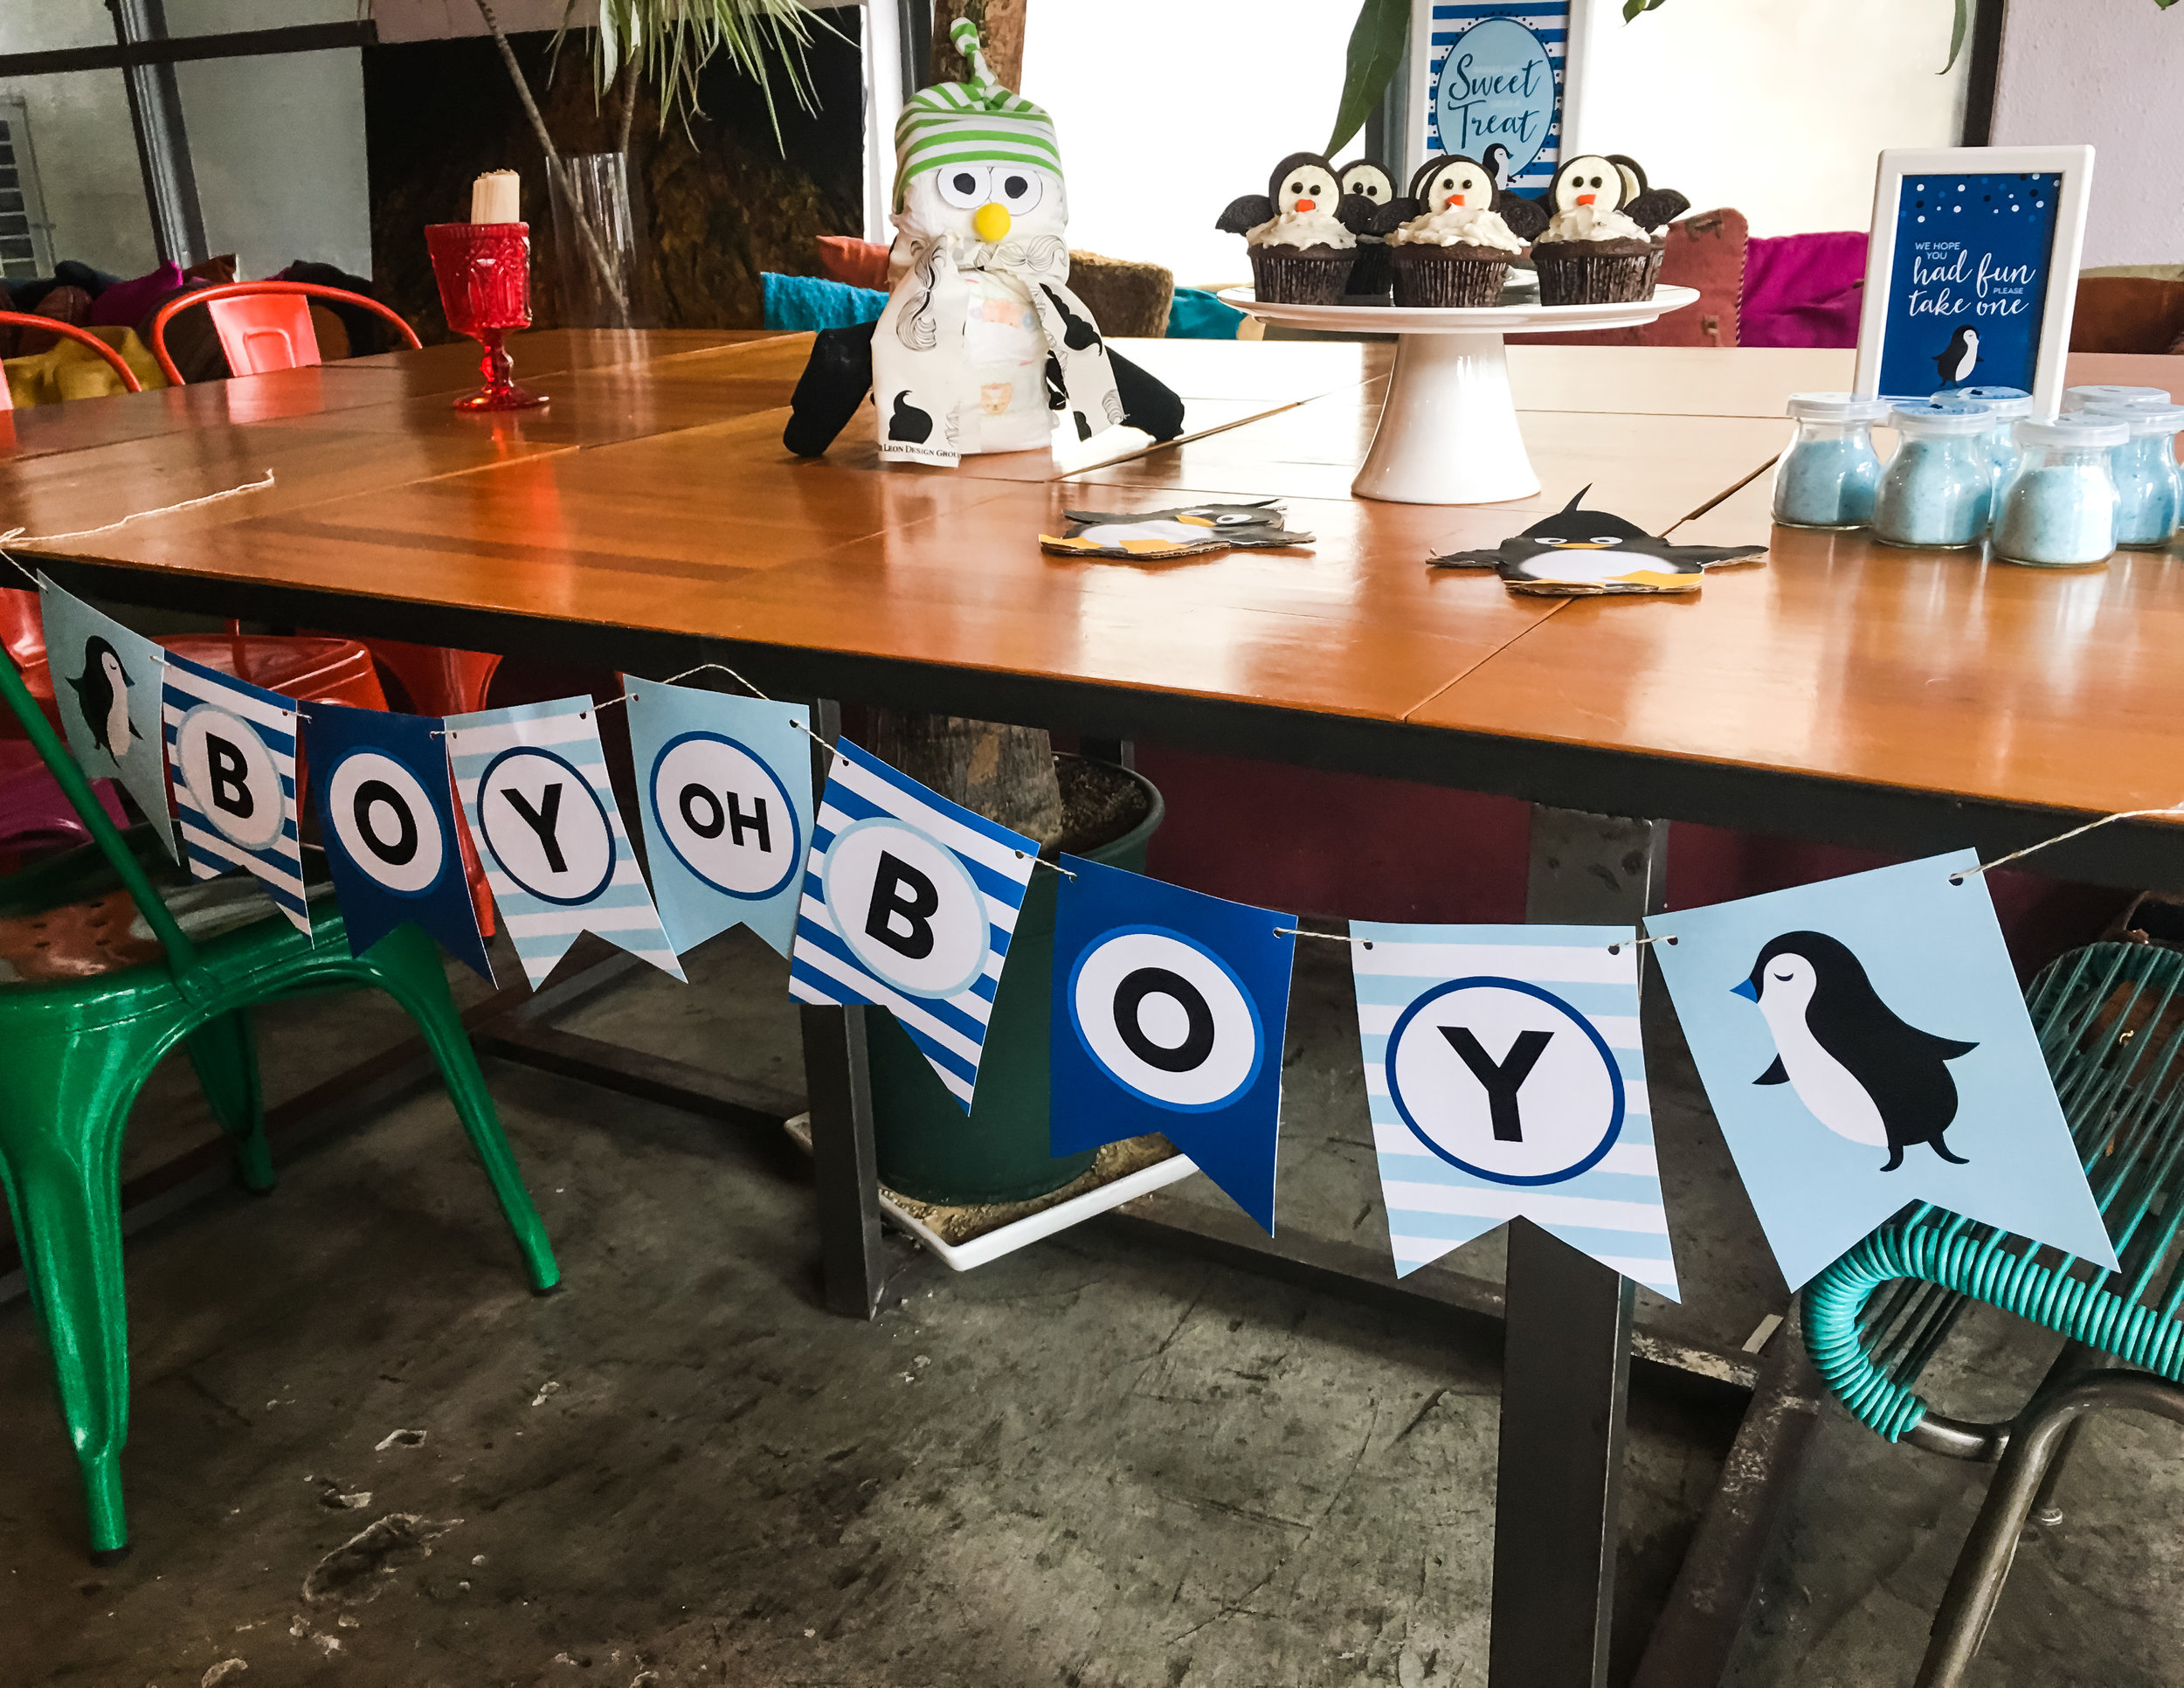 Penguin baby shower banner.